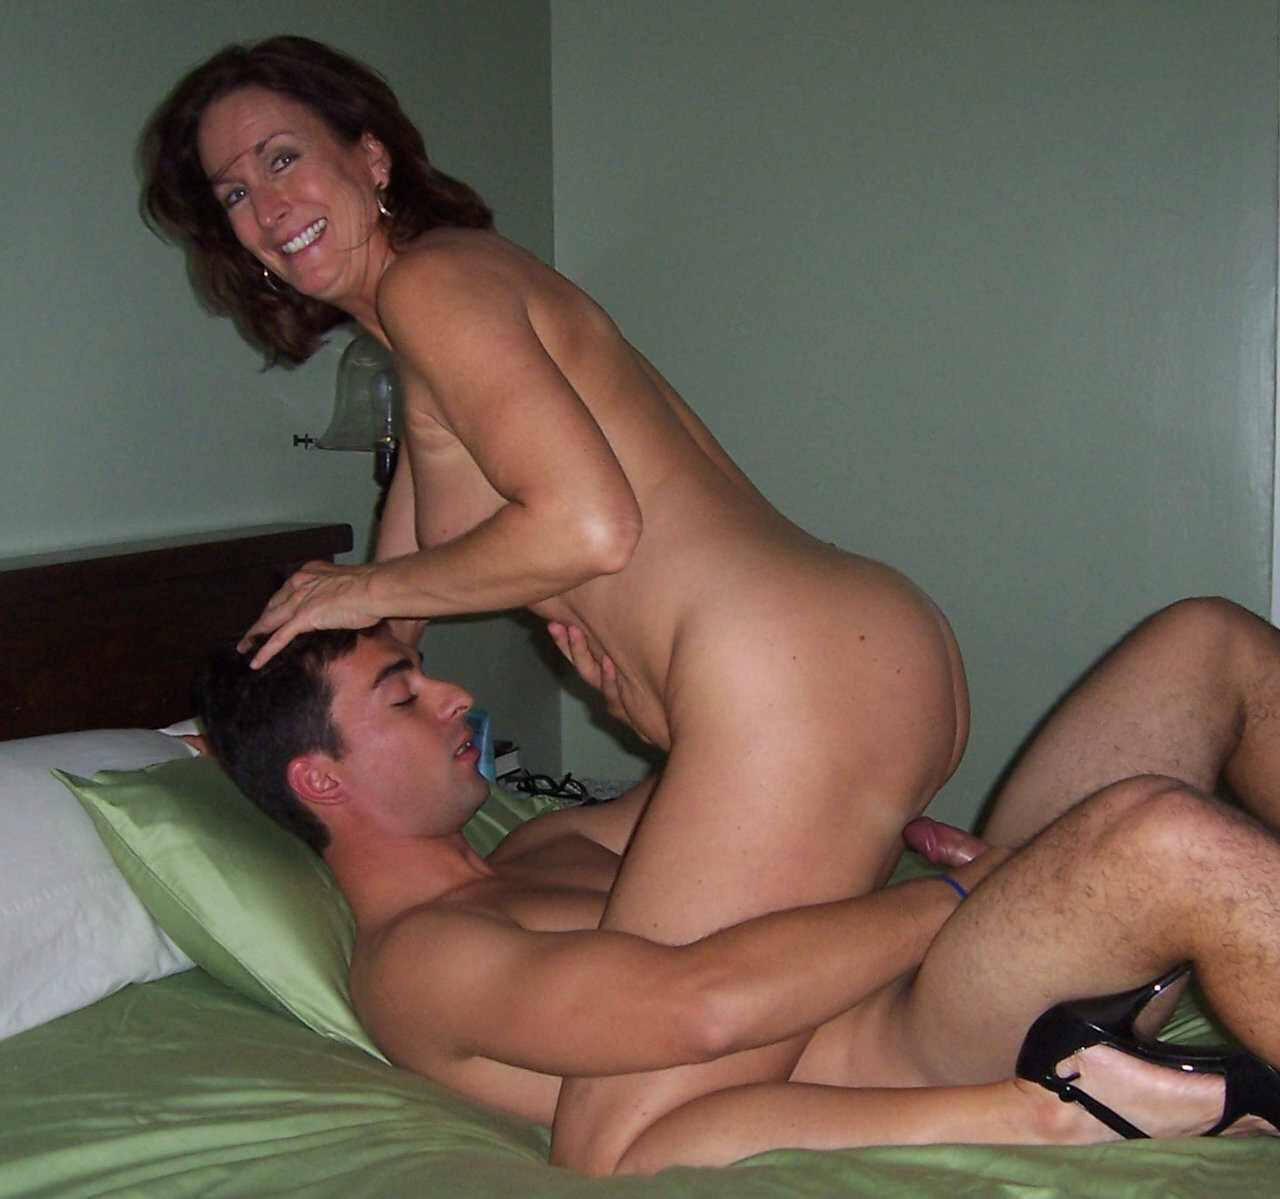 Amateur mature photo sex woman